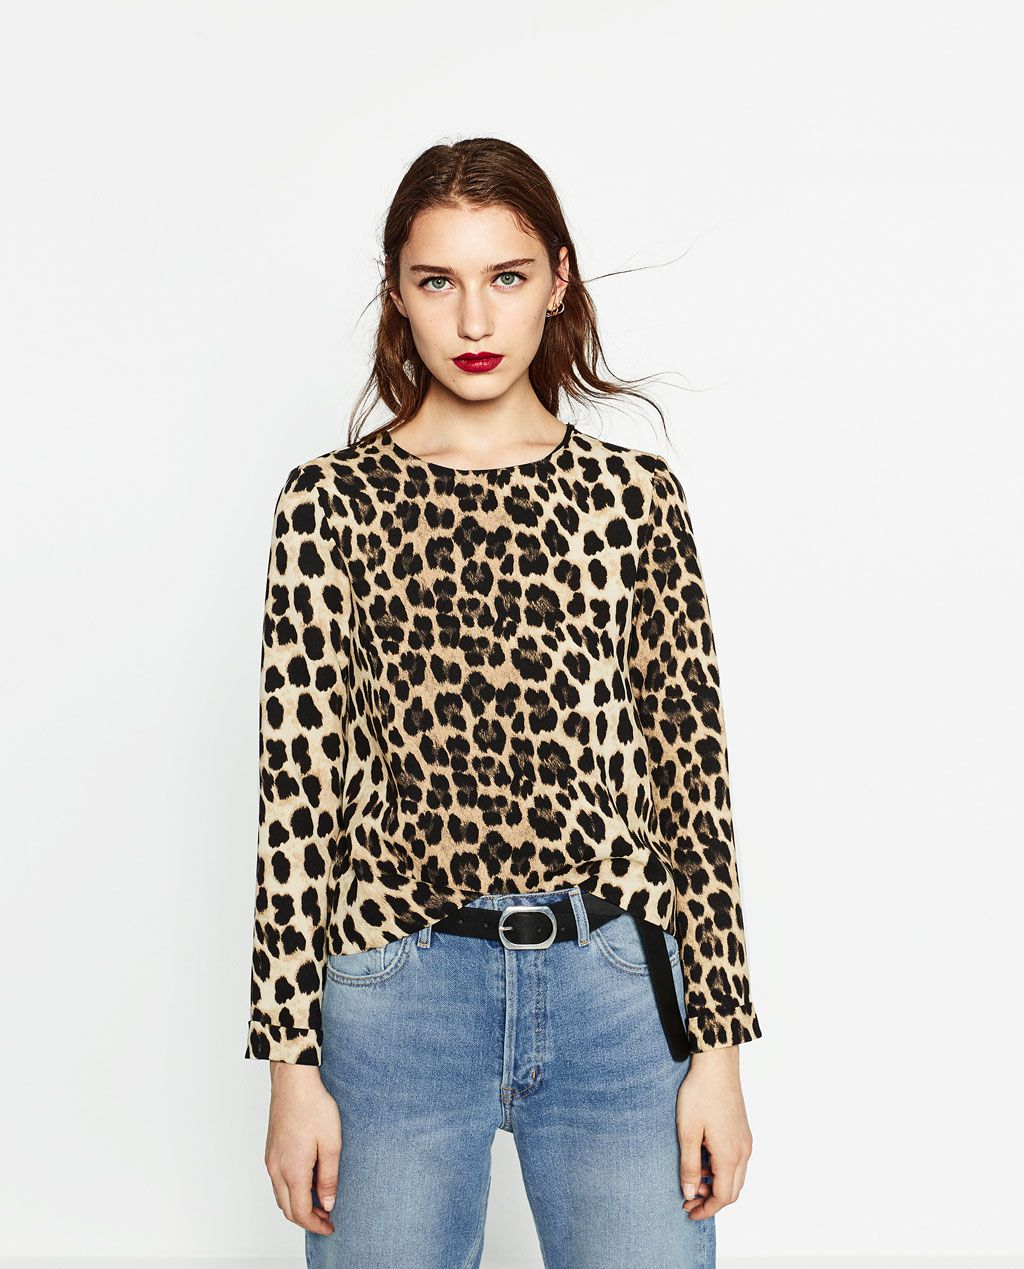 8b5c99d0e56d ANIMAL PRINT TOP-Blouses-TOPS-WOMAN | ZARA United States | Fashion ...